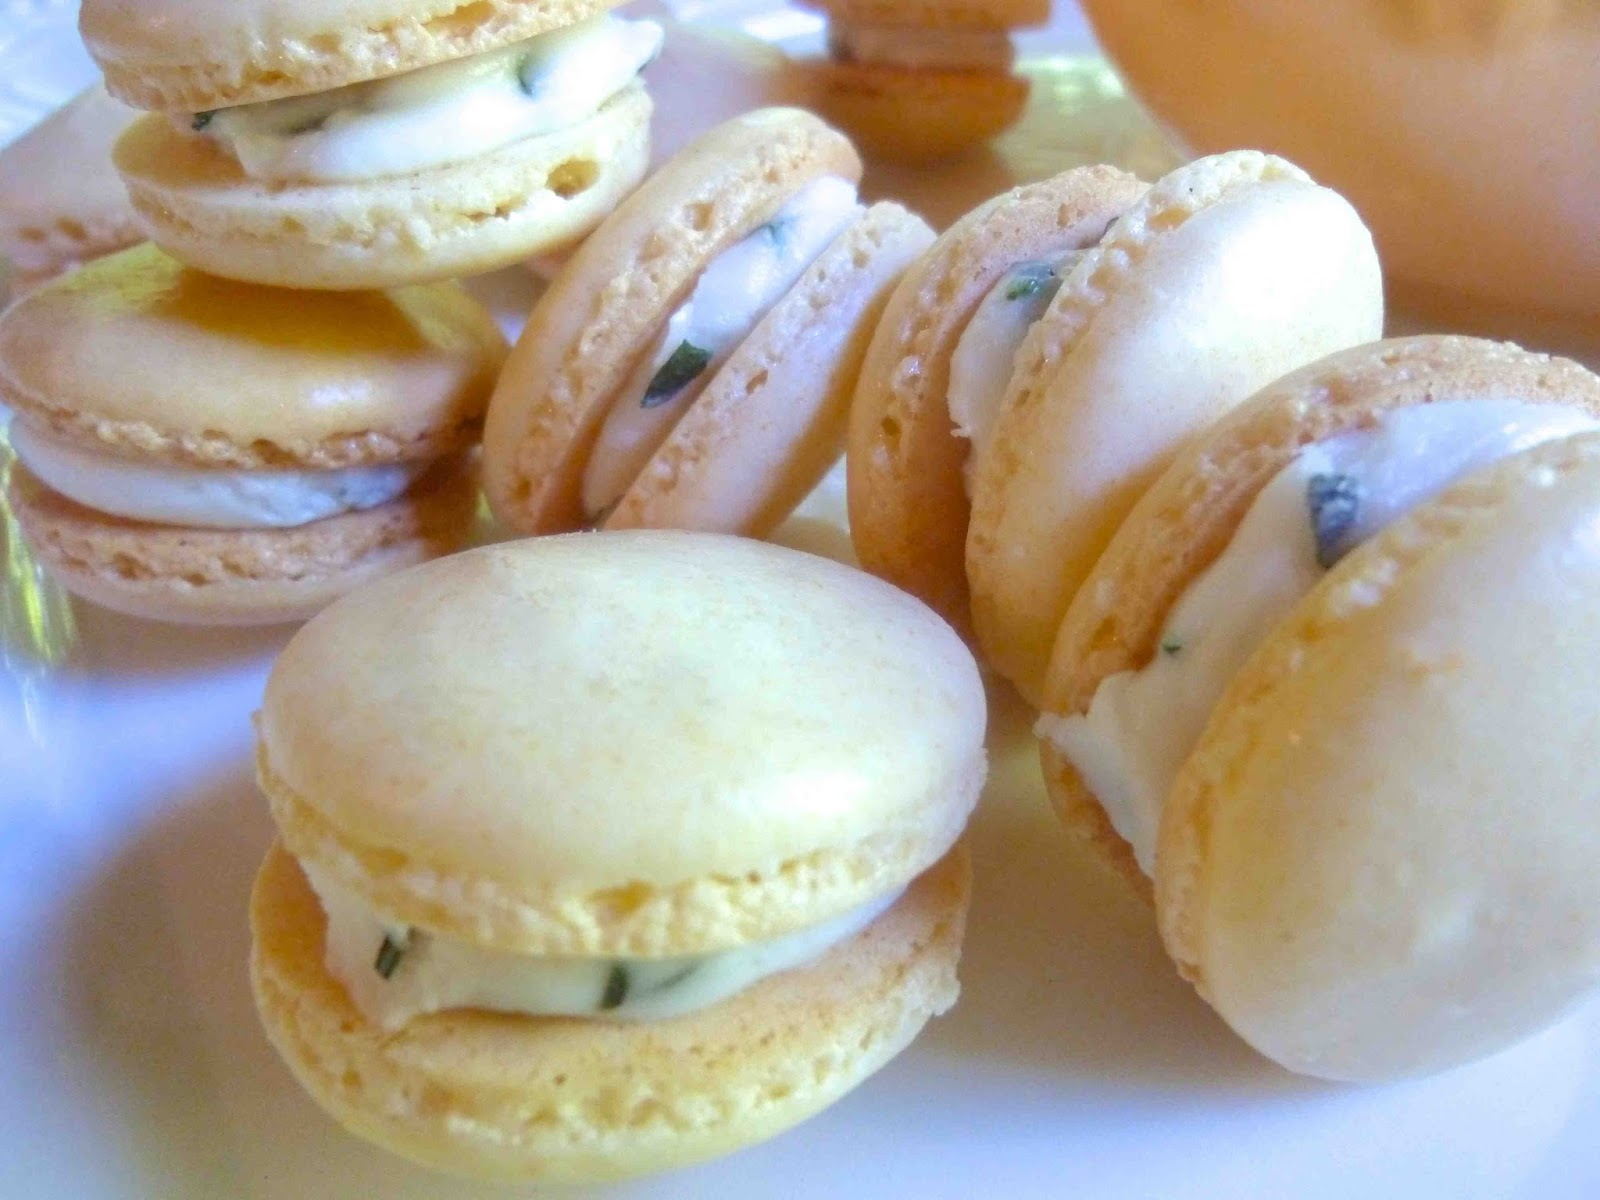 ... : Goji Berry Macarons with Mixed Herb Vanilla Buttercream Filling